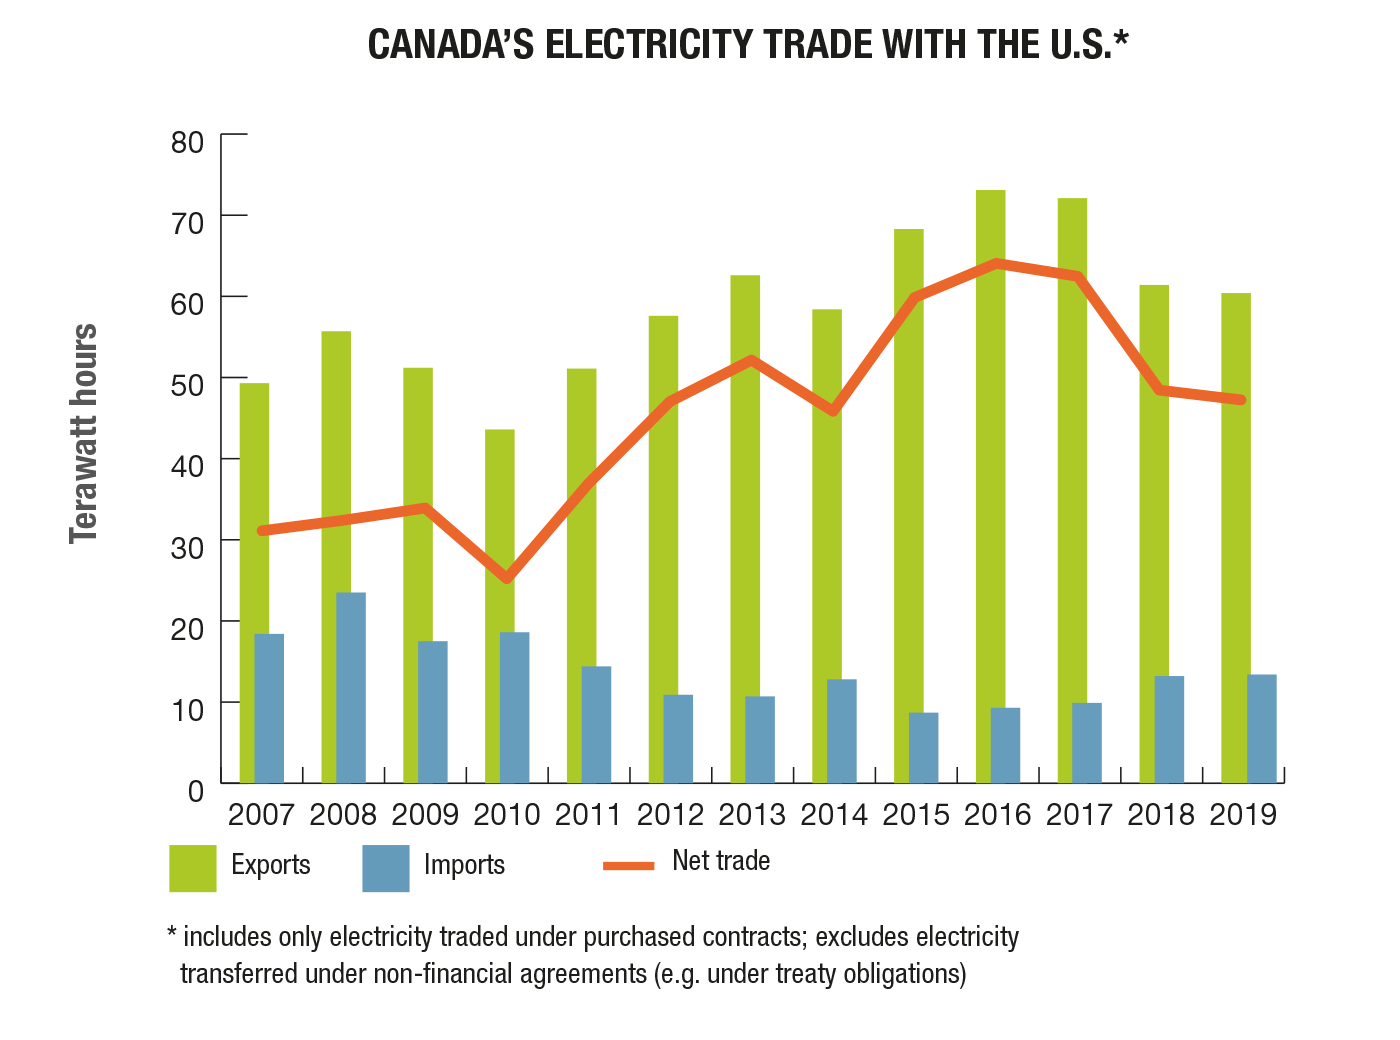 Canda is a net exporter in its electricity trade with the U.S.